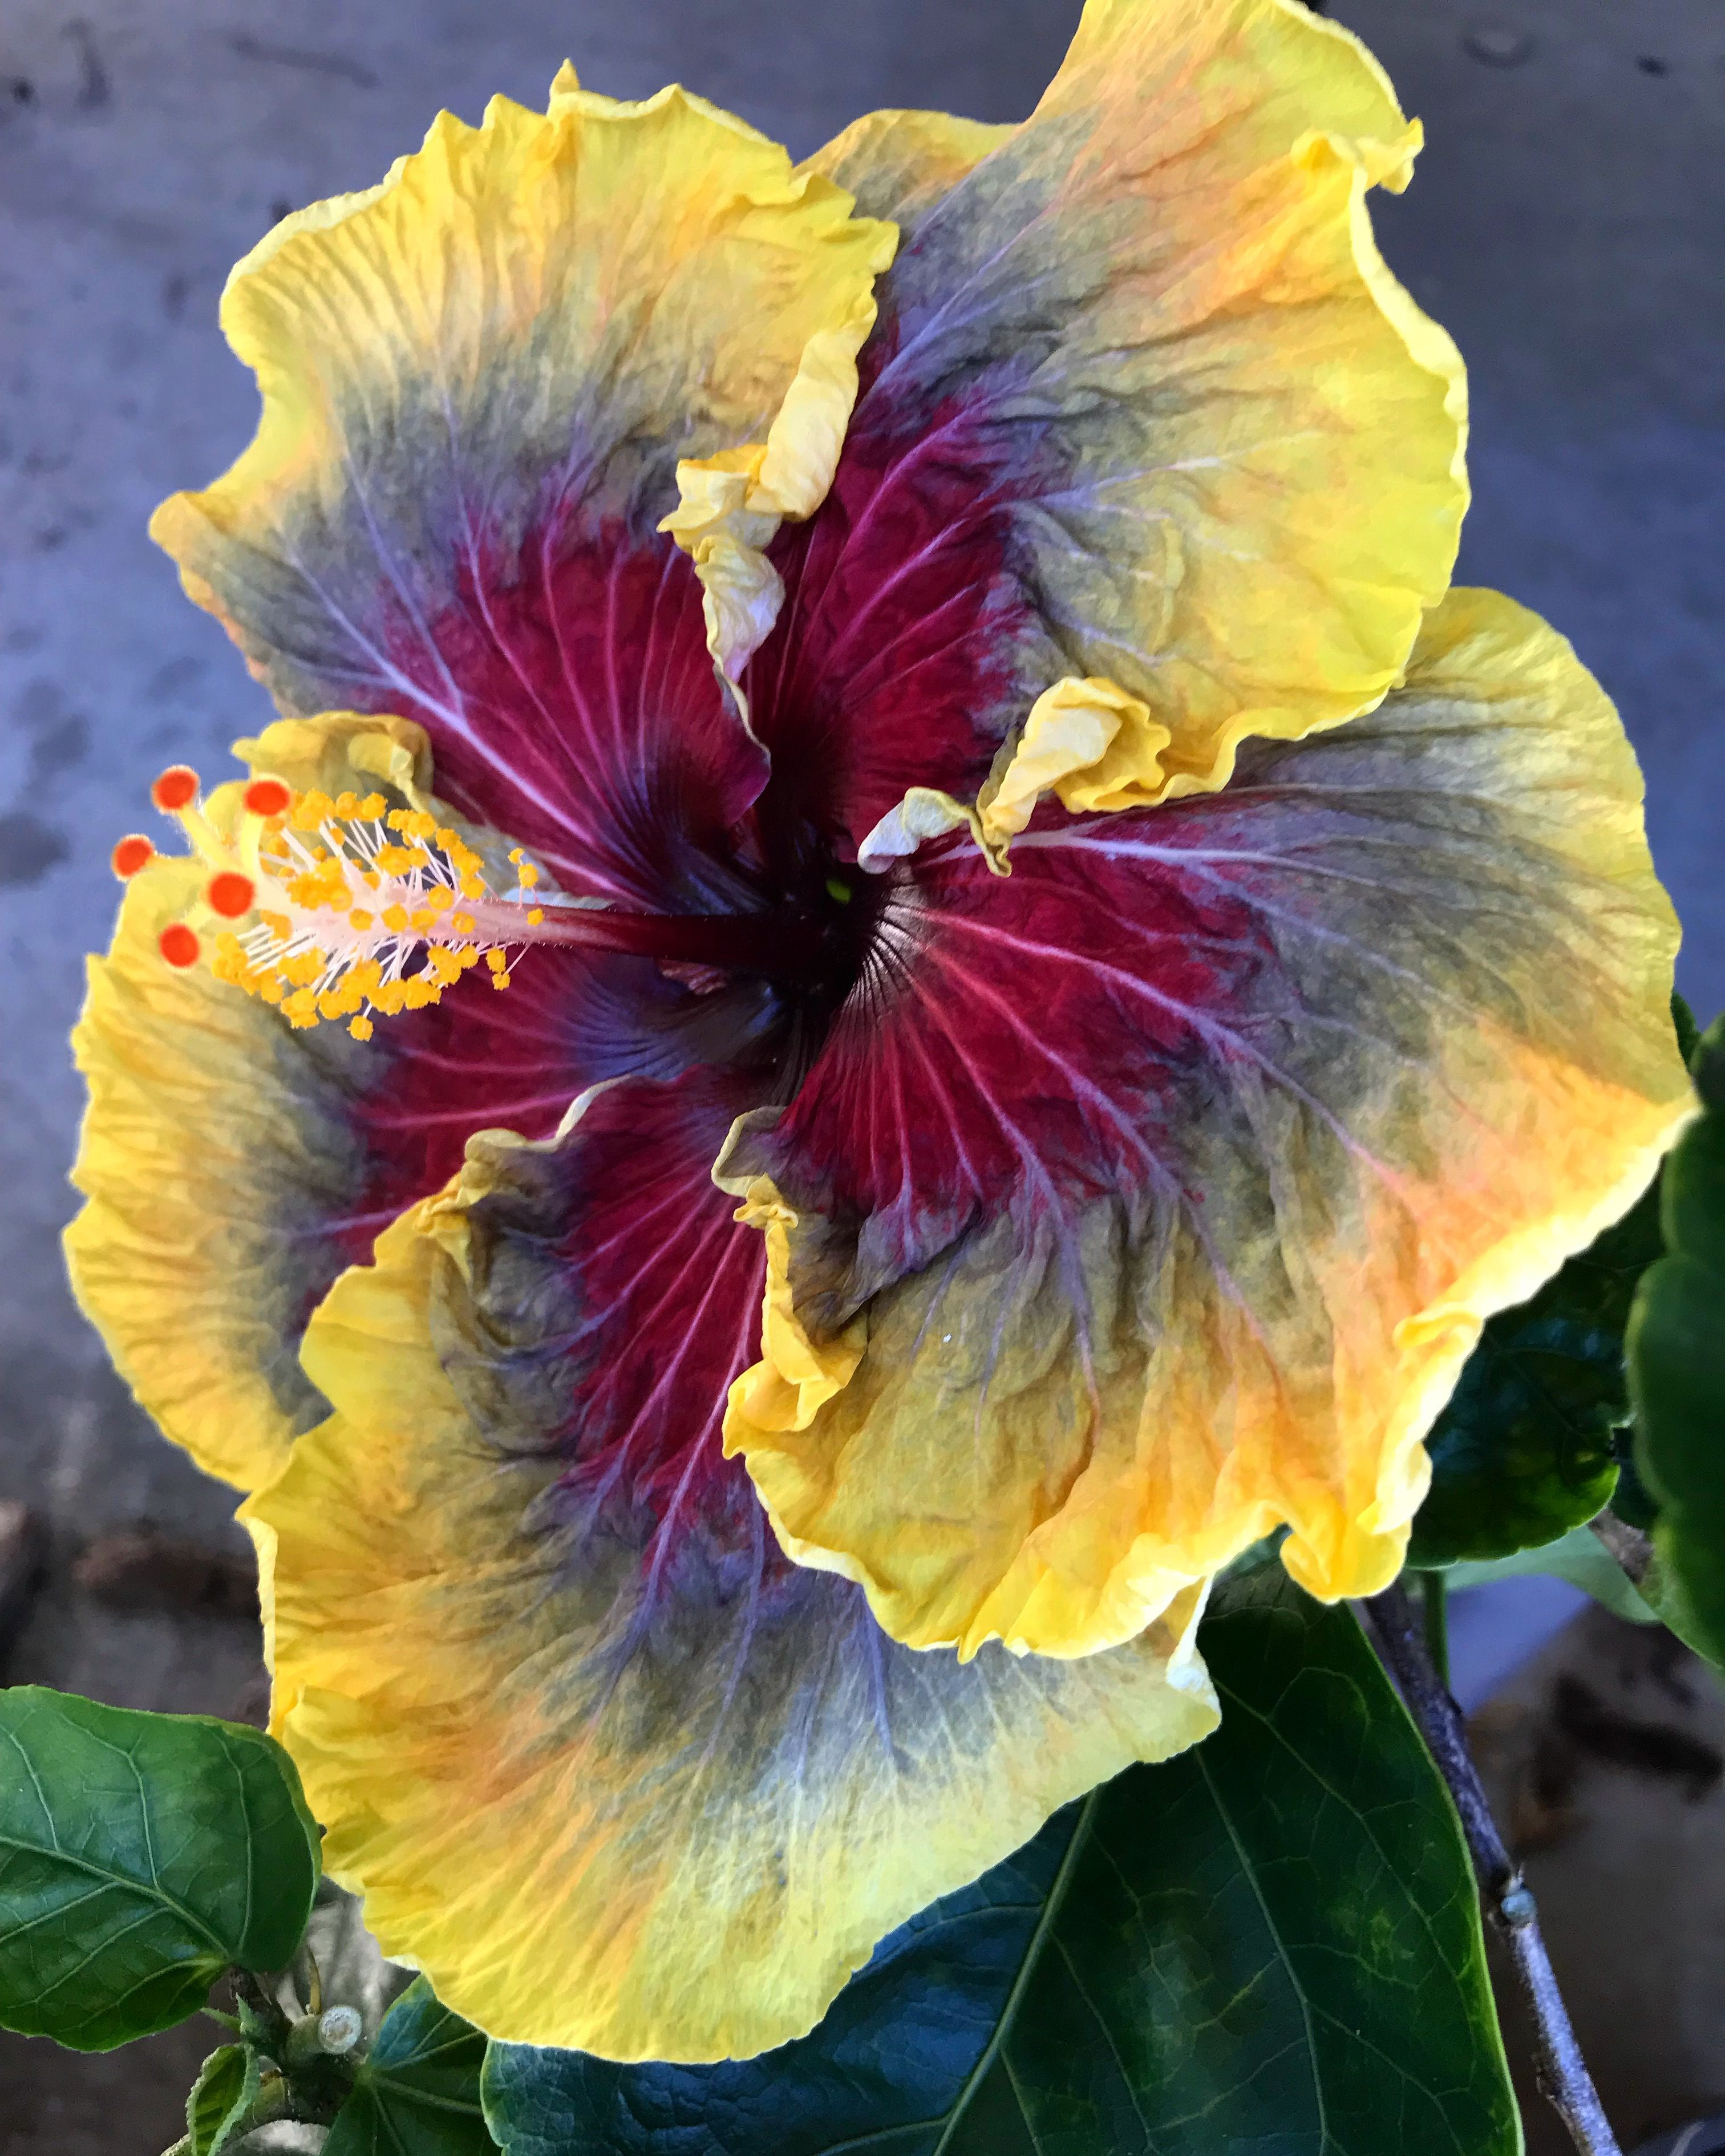 Pin on Hibiscus The beauty of nature